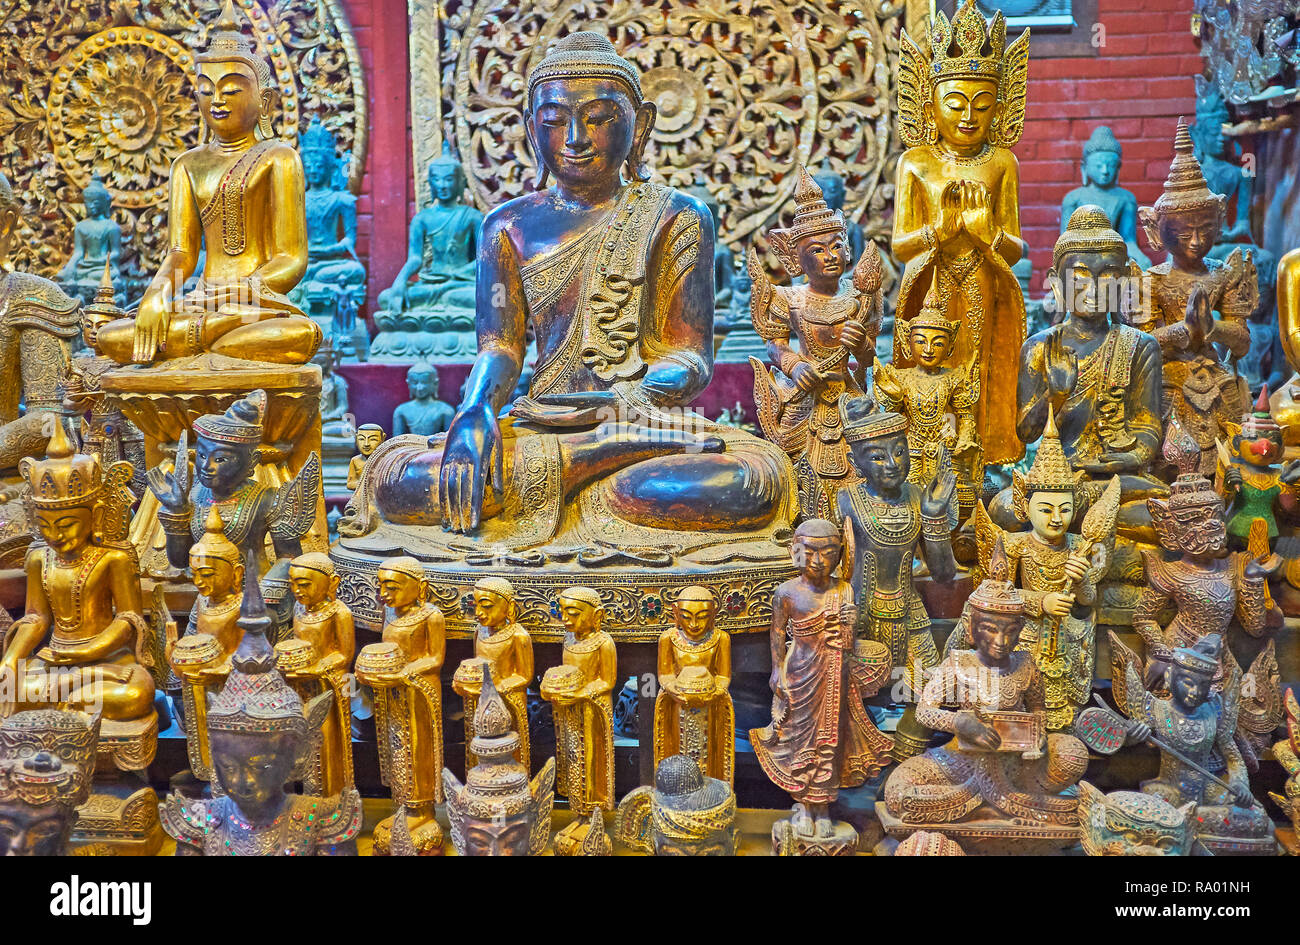 The wide range of scenic handmade Buddhist cult sculptures and statuettes in shape of Buddha, Nats (spirit deities), bhikkhu monks and mythic creature - Stock Image